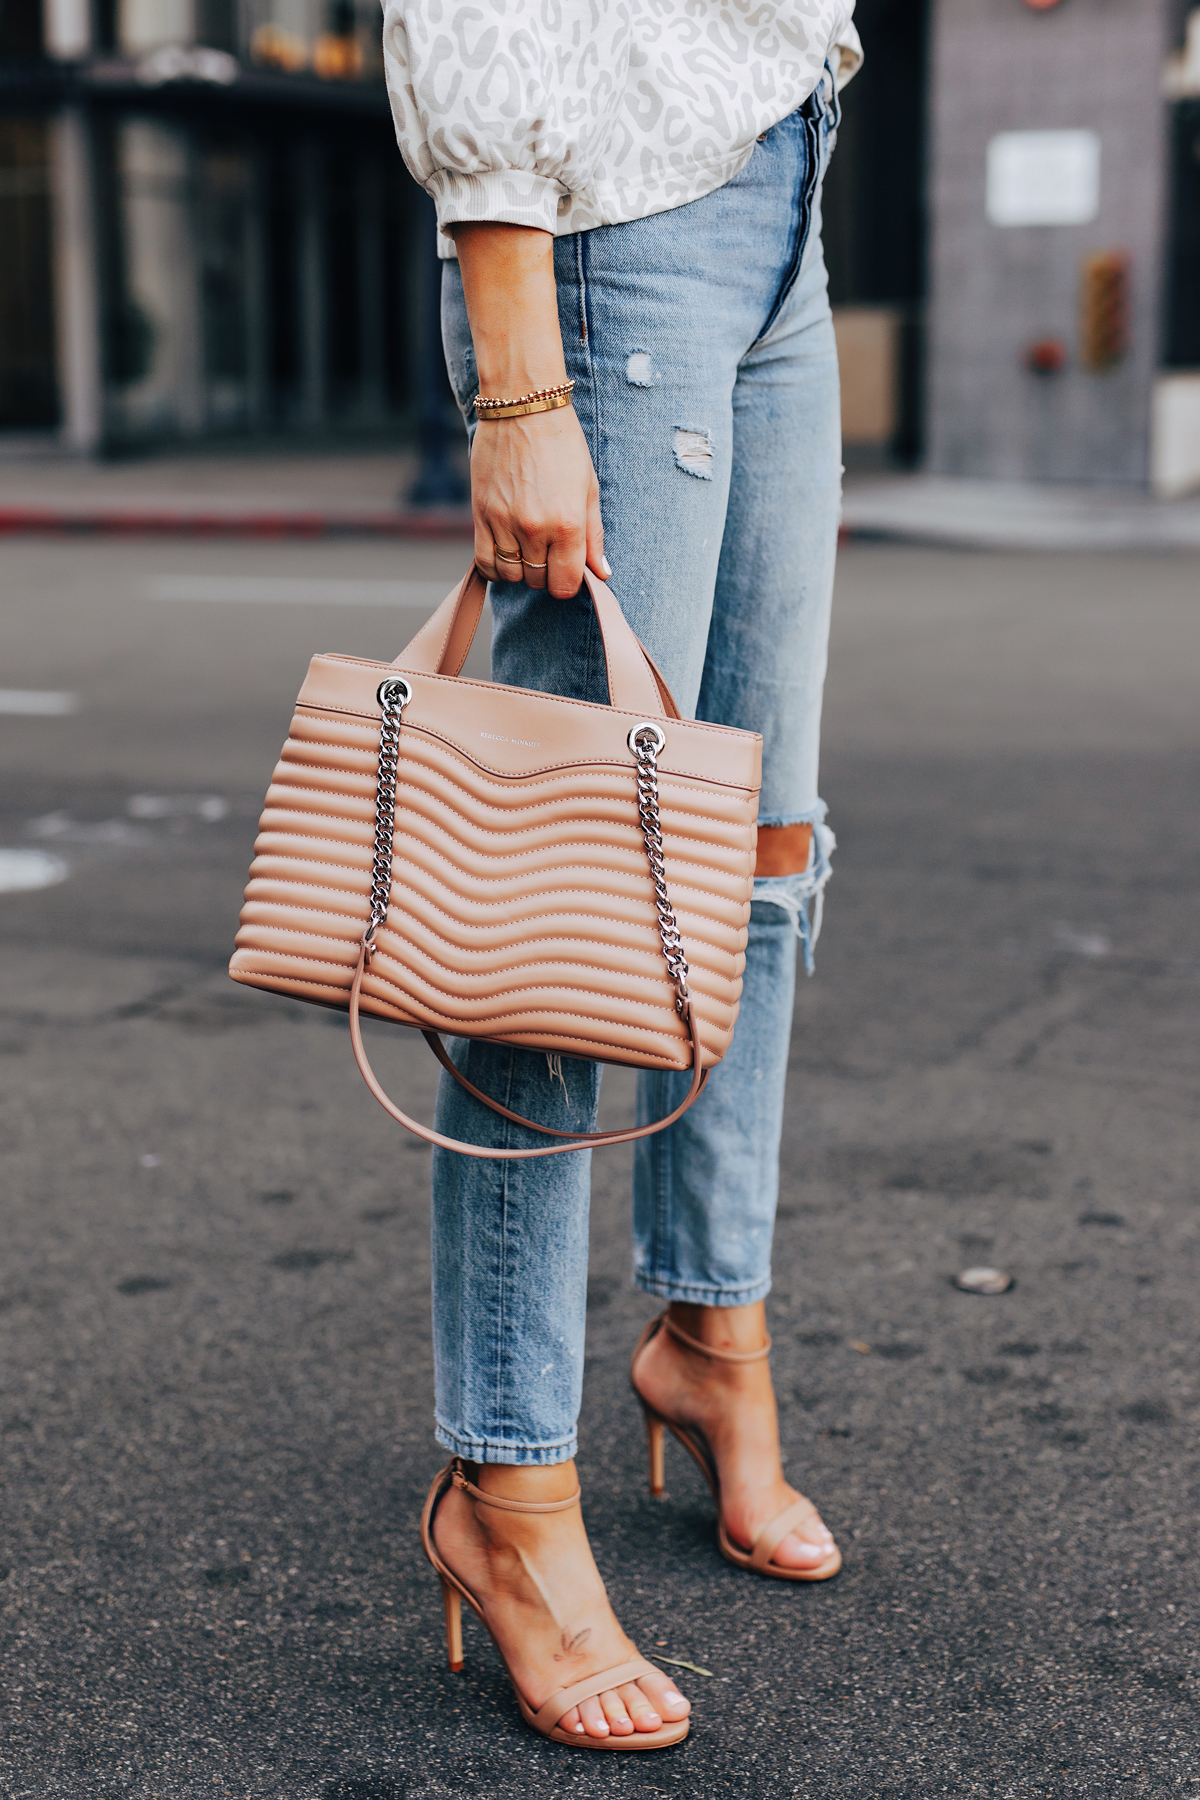 Fashion Jackson Holding Rebecca Minkoff MAB Quilted Satchel Blush Ripped Denim Jeans Tan Ankle Strap Heeled Sandals